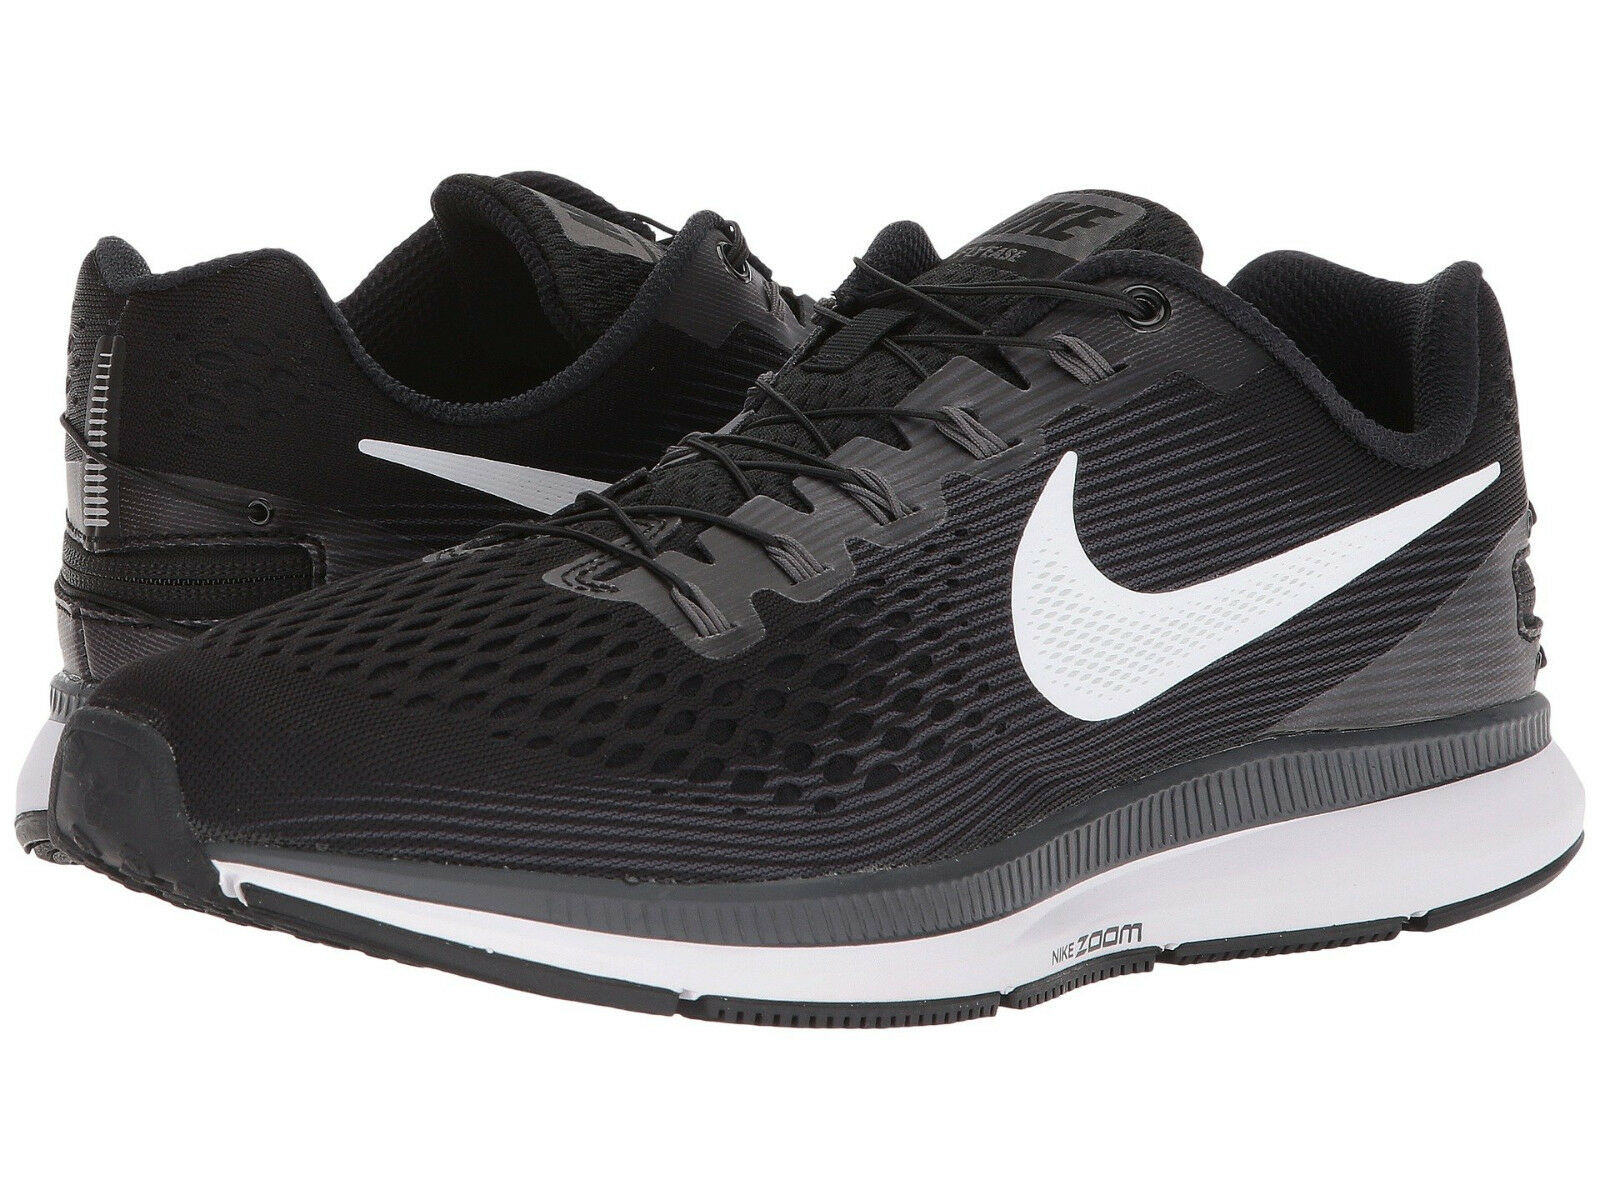 Nike Air Zoom Pegasus 34 Flyease WD, Women Sizes 8.5-9 Wide Black White Grey NEW